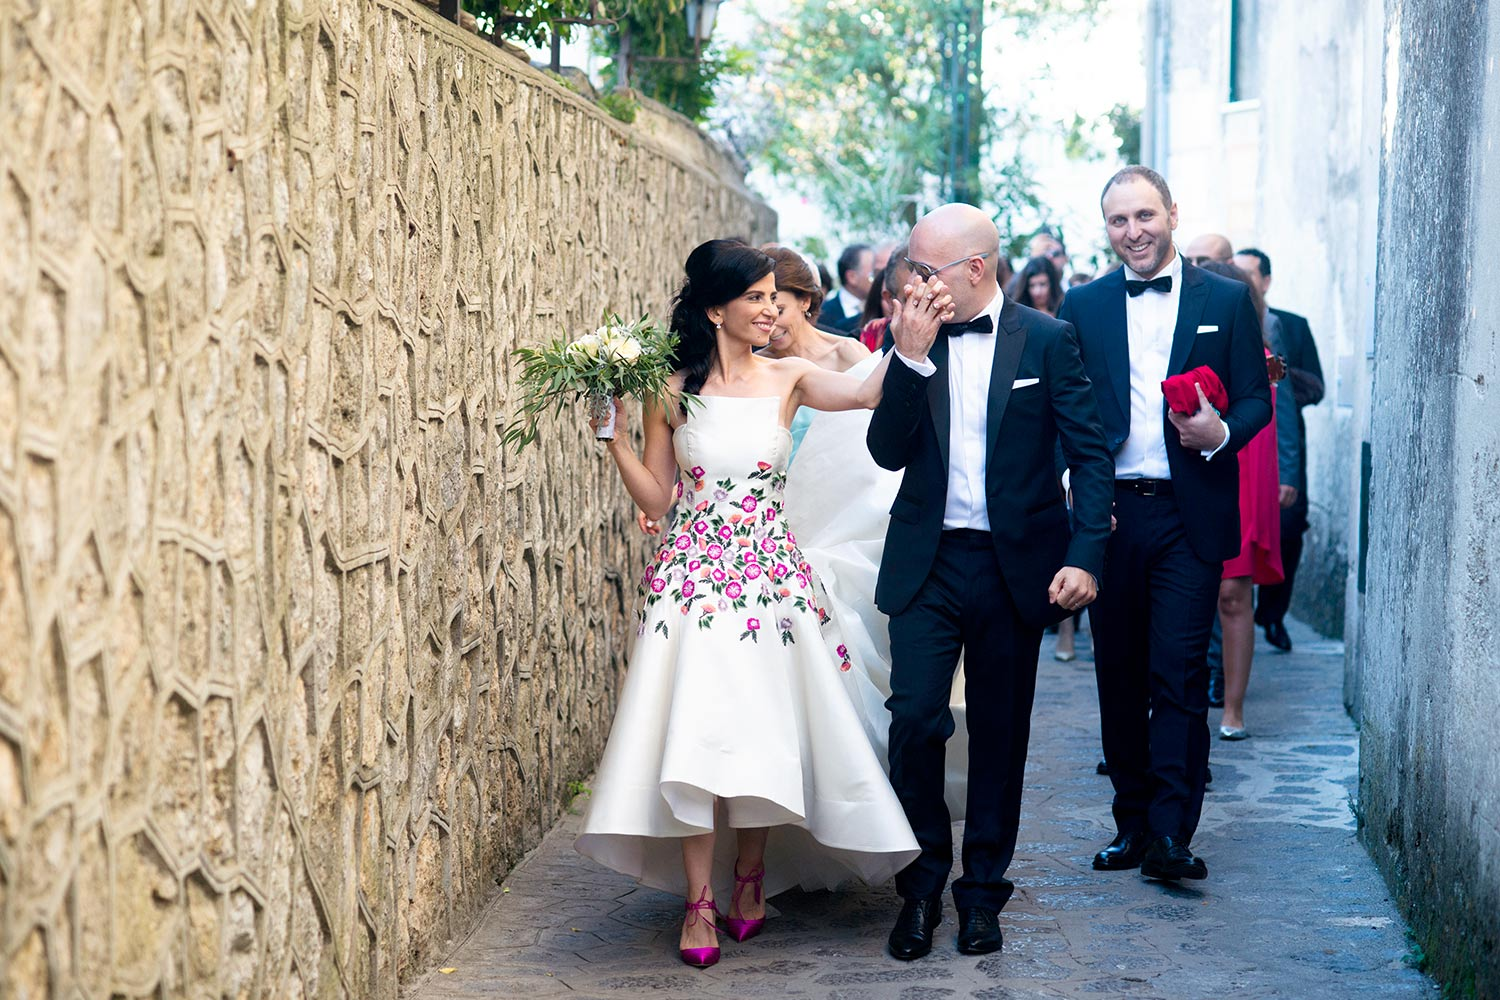 Lebanon Wedding in Villa Cimbrone